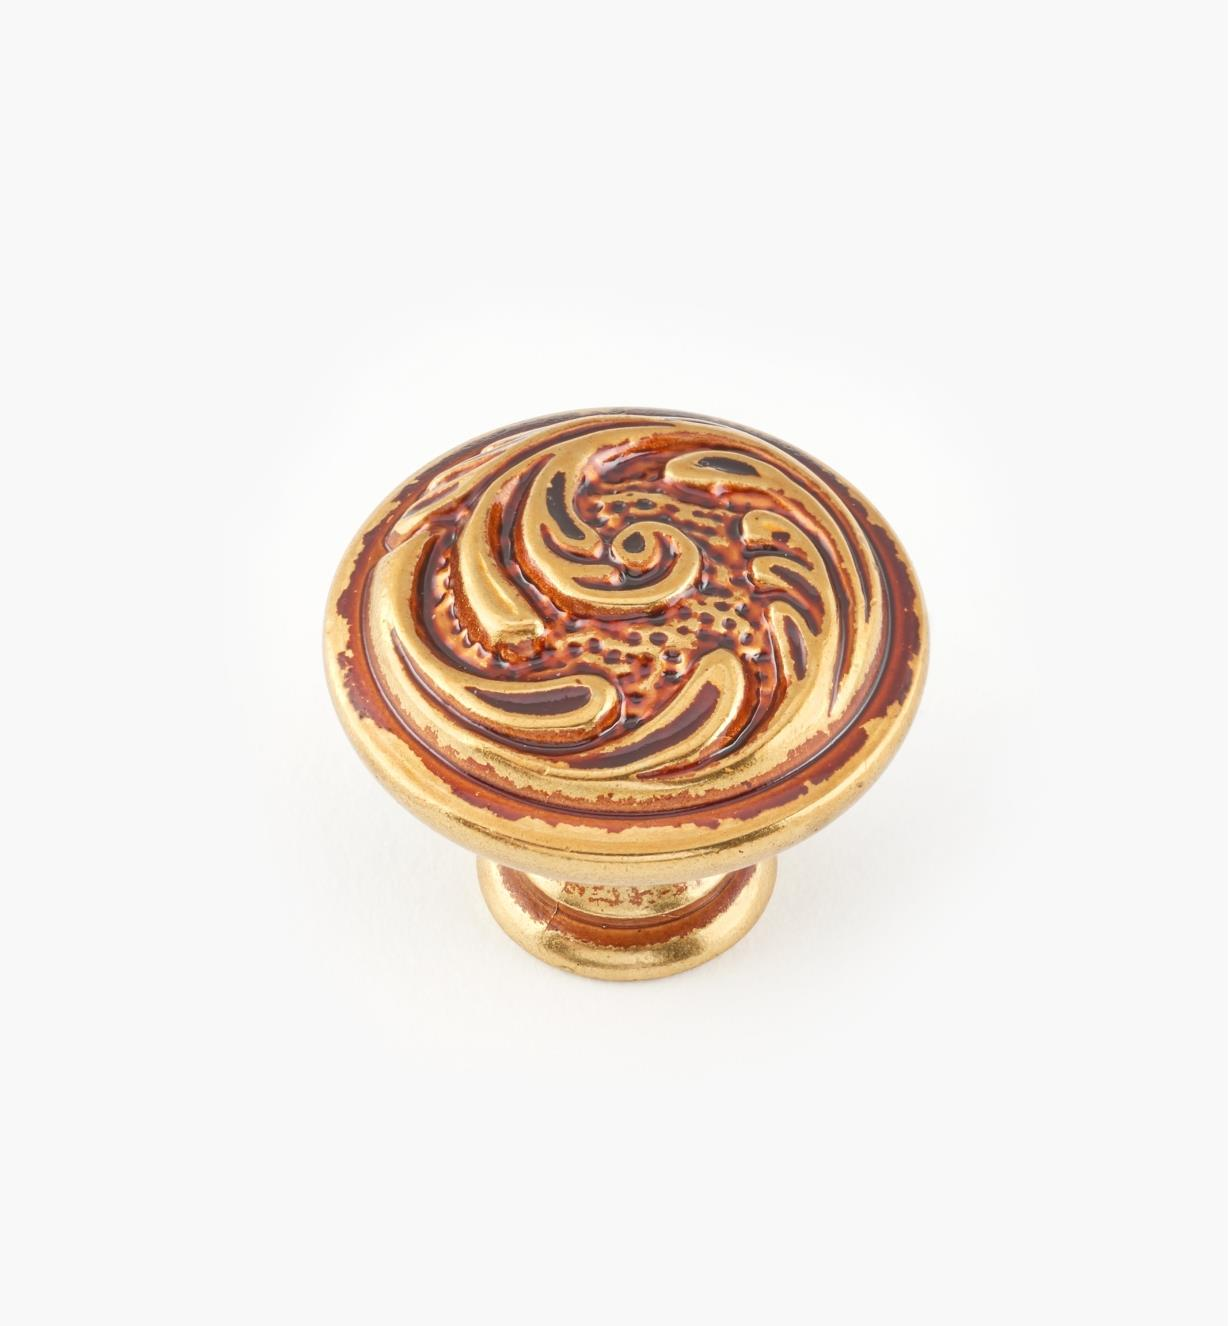 01A5351 - 30mm x 24mm Louis XV Knob